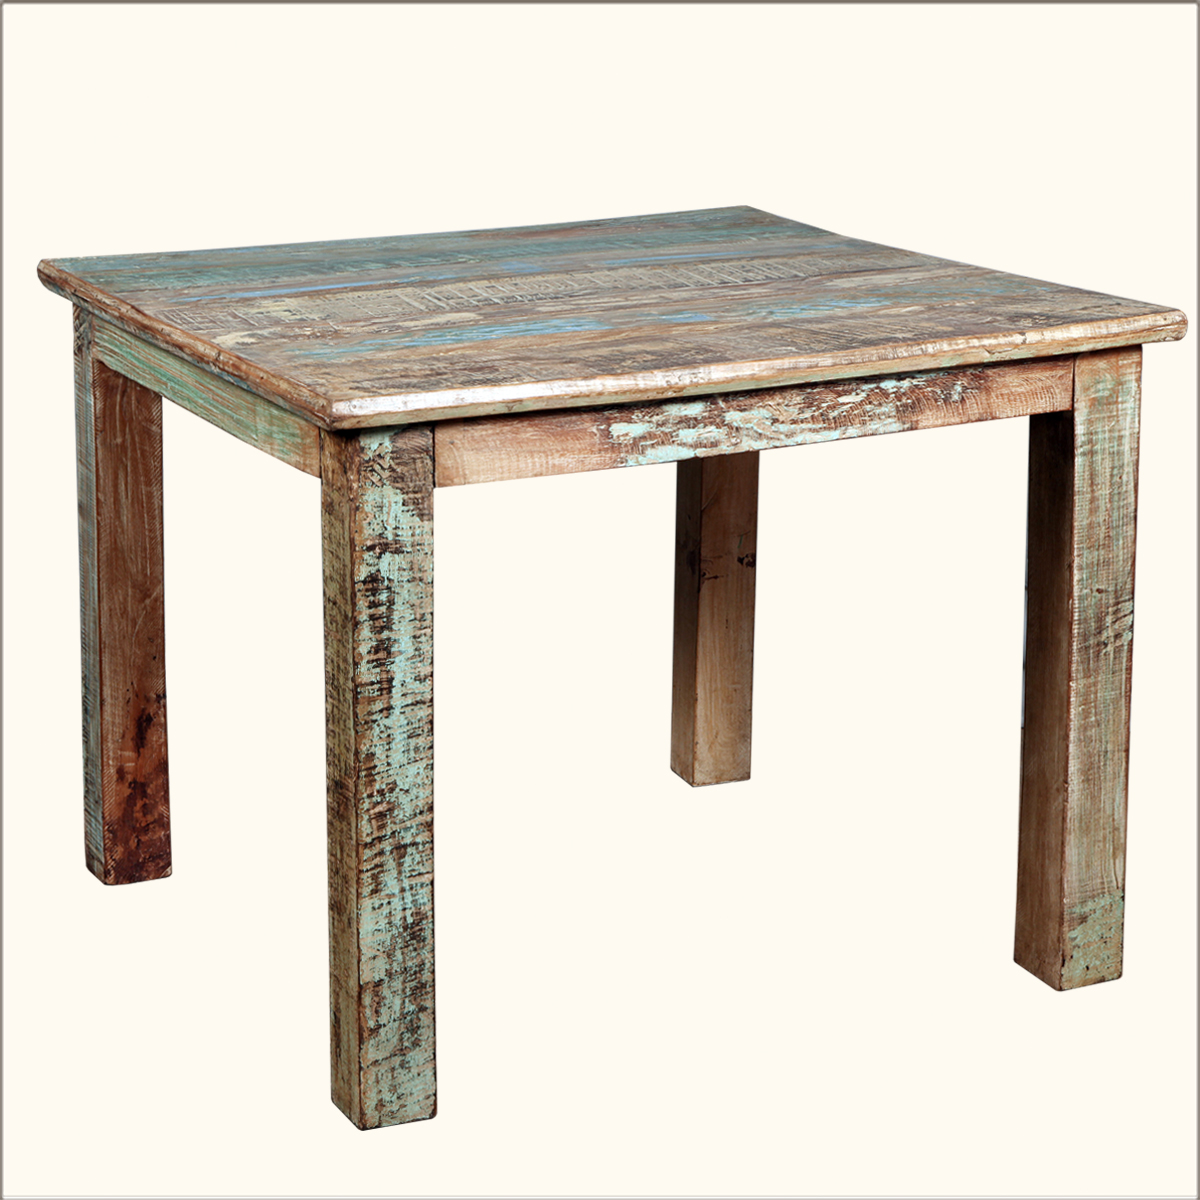 Rustic Reclaimed Wood Distressed 40 Square Kitchen Dining